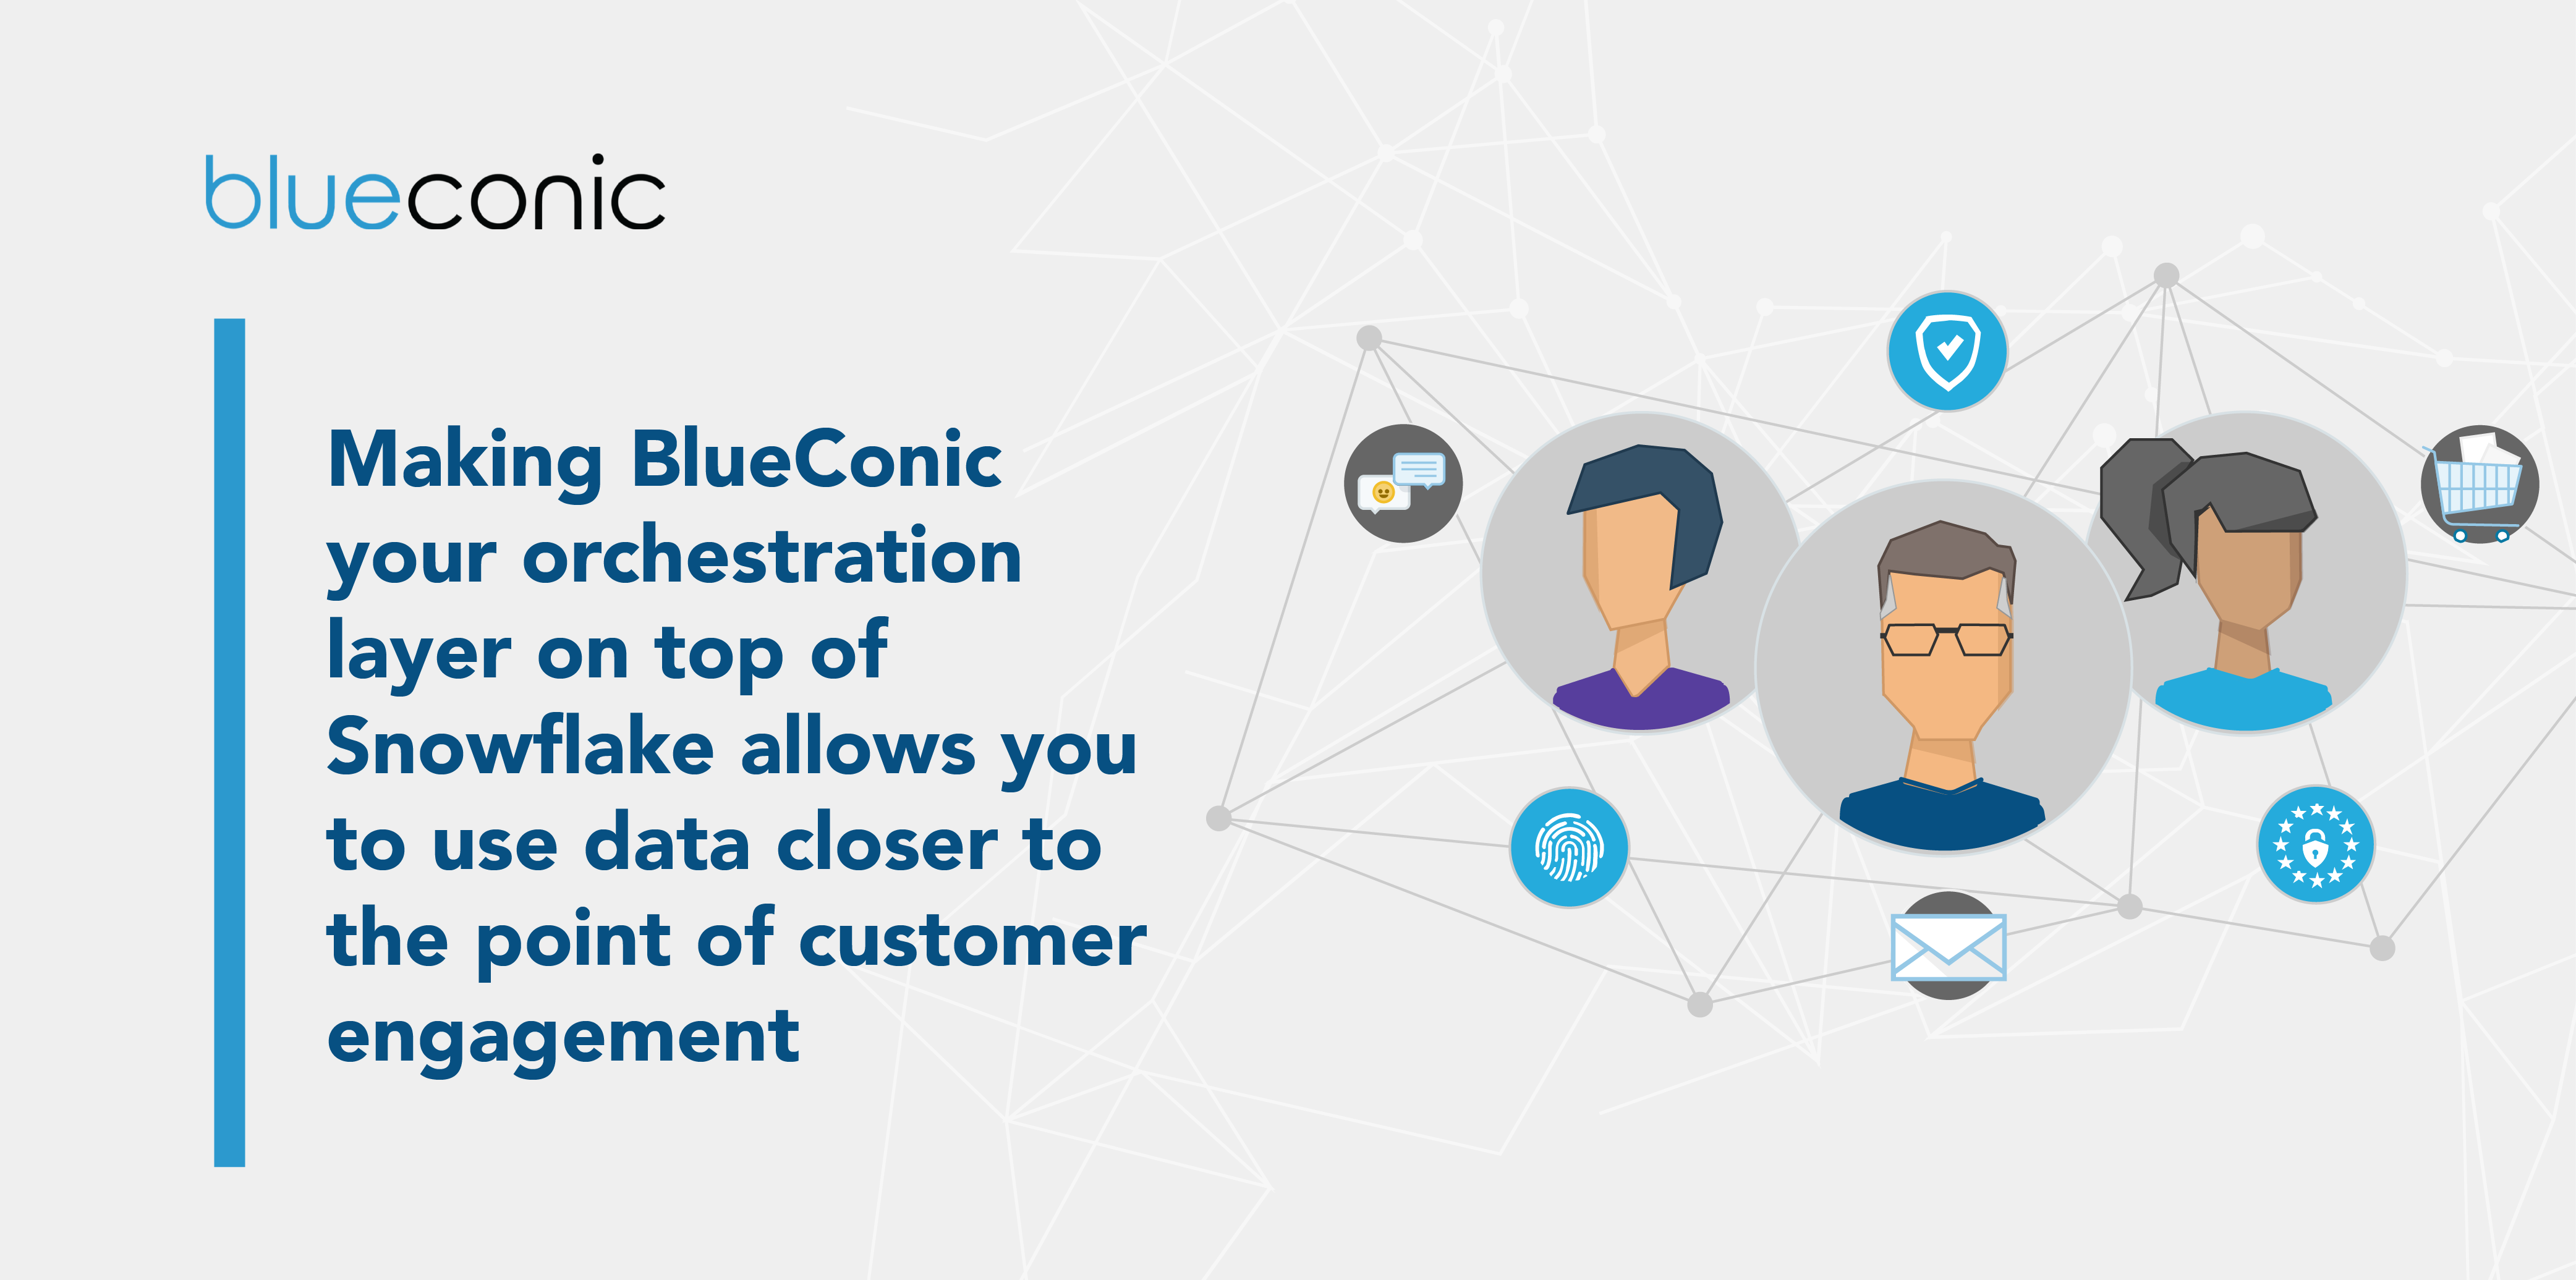 Making BlueConic your orchestration layer on top of Snowflake allows you to use data closer to the point of customer engagement.